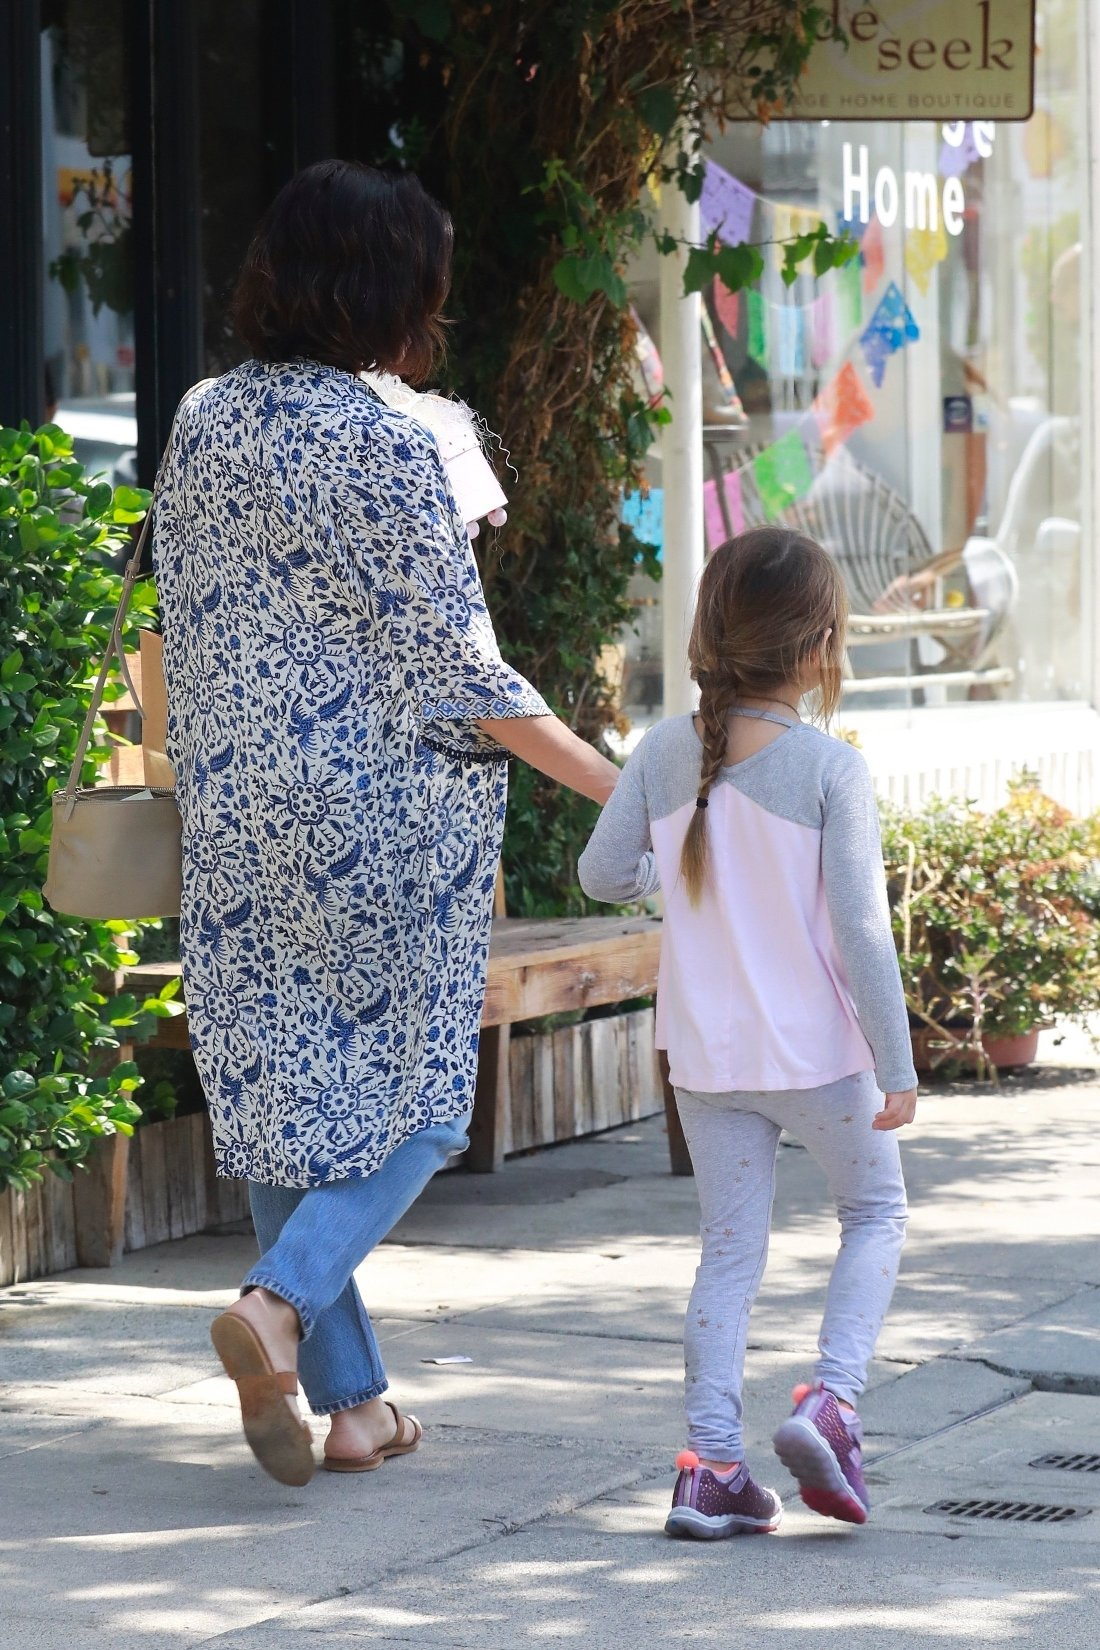 Studio City, CA  - *EXCLUSIVE*  - Jenna Dewan takes a day off from filming her TV show 'The Resident' to the Labor Day holiday and take her daughter Everly shopping in Studio City. The actress and dancer and ran into friends while out and stopped to pet their dog before hitting the stores.  Pictured: Jenna Dewan, Everly Tatum    *UK Clients - Pictures Containing Children Please Pixelate Face Prior To Publication*, Image: 385188153, License: Rights-managed, Restrictions: , Model Release: no, Credit line: Profimedia, AKM-GSI